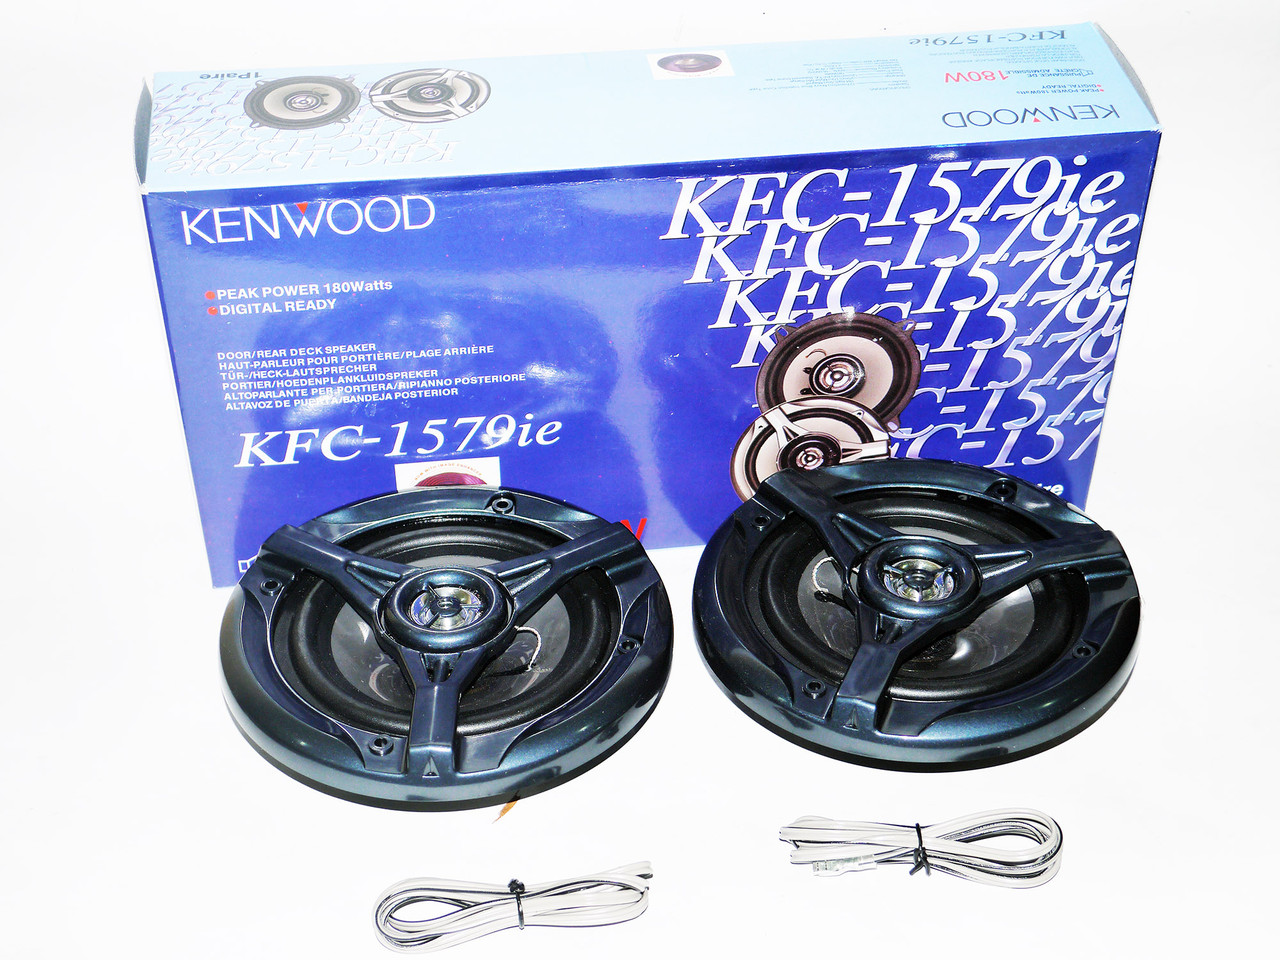 Динамики Kenwood KFC-1579 ie 13см 180 Вт